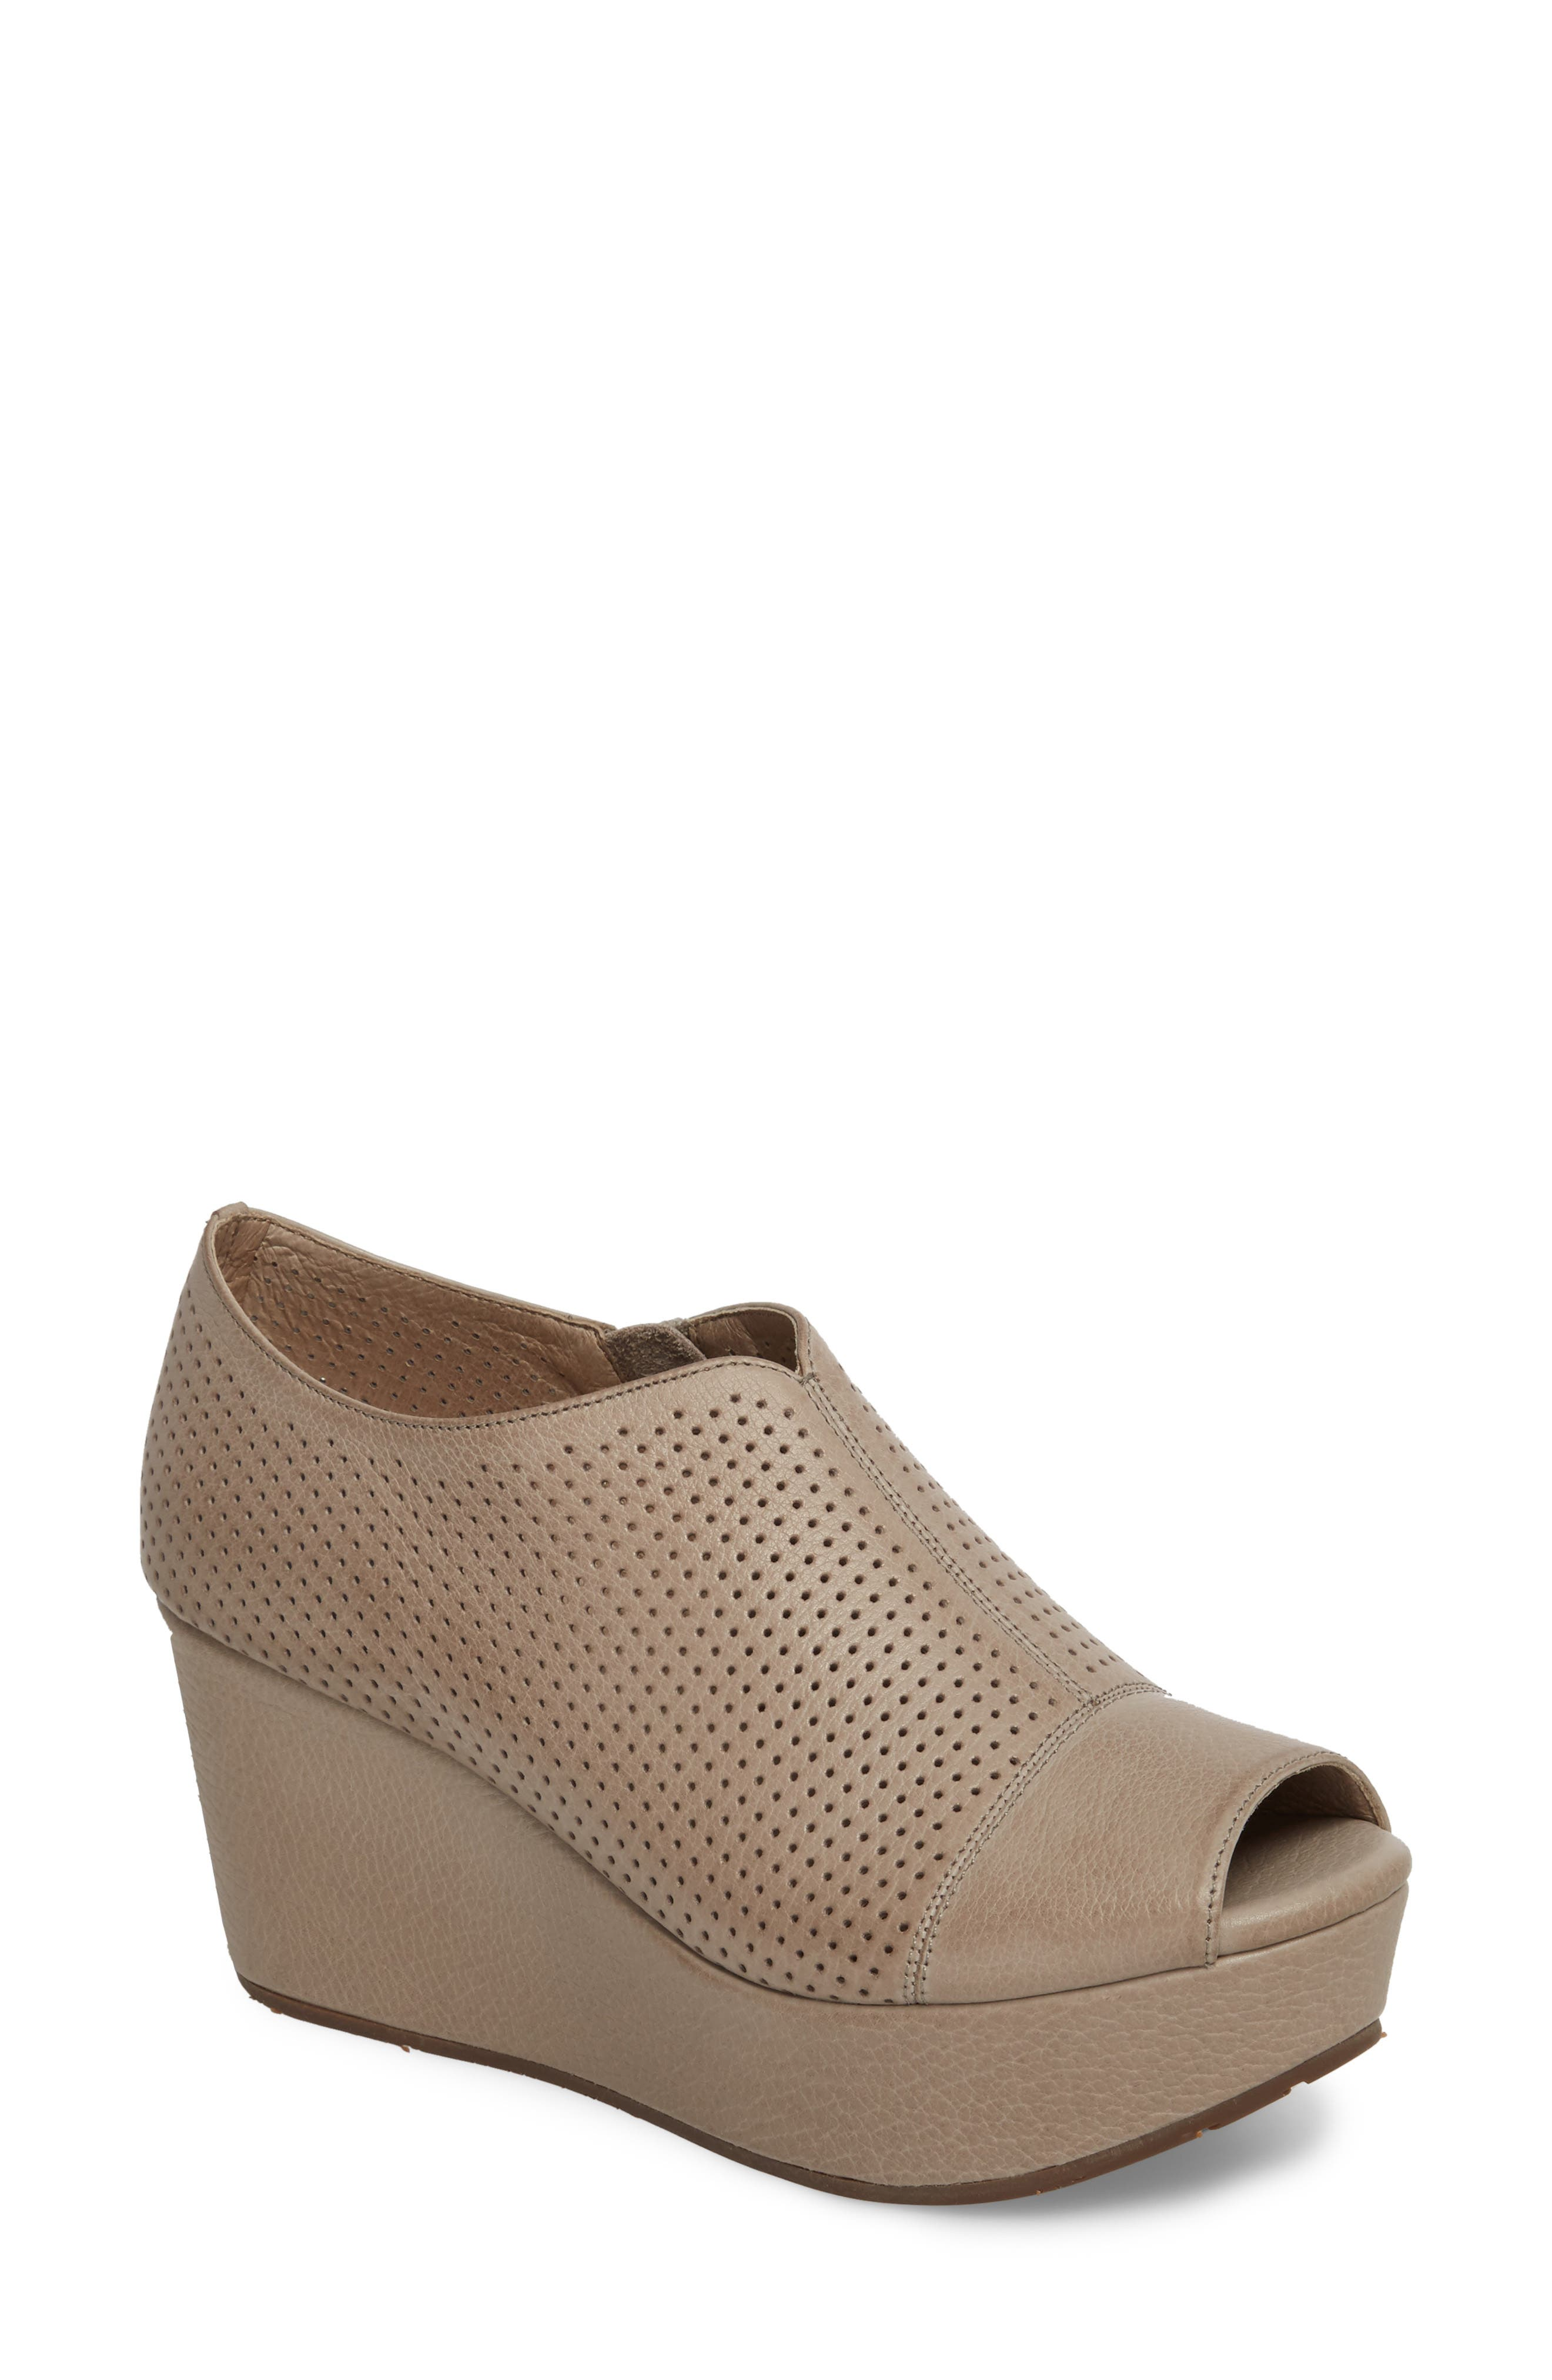 Wheeler Wedge Sandal,                         Main,                         color, GREY LEATHER